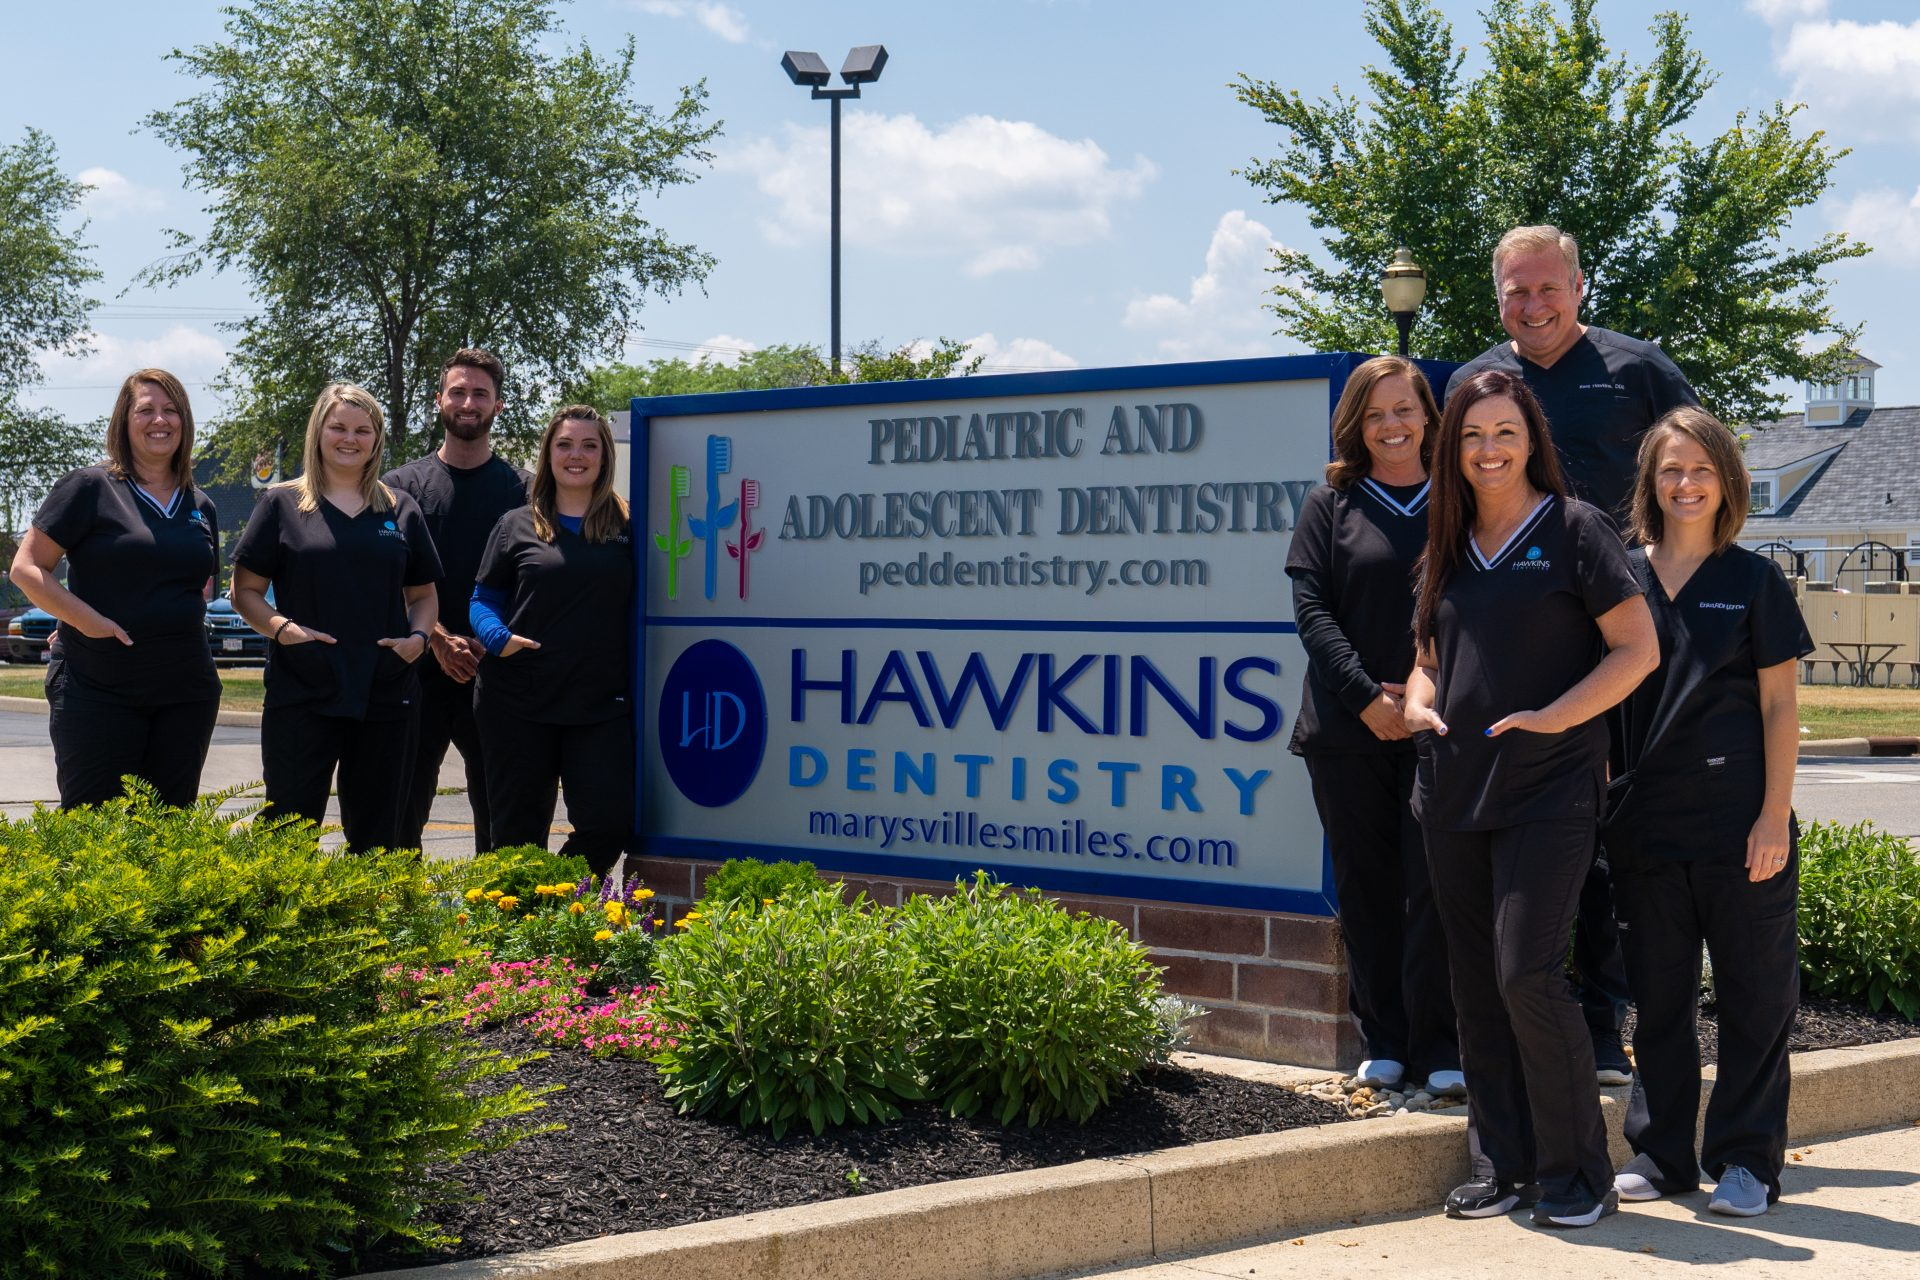 20190708 Hawkins Dentistry 238 - Home